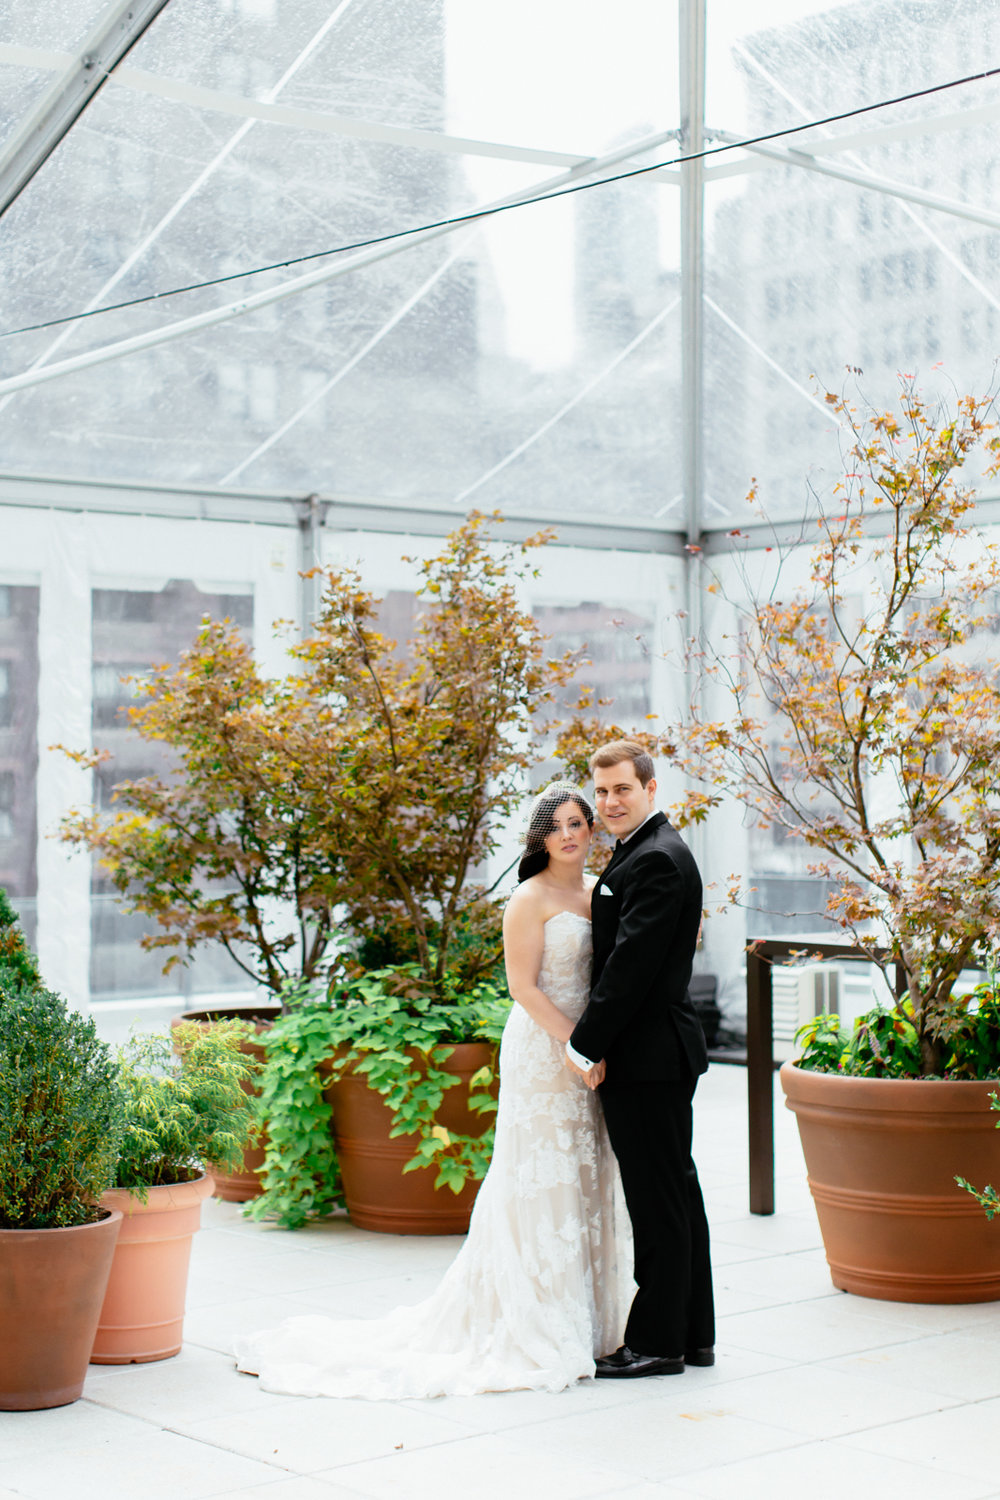 NYC Wedding Photography Lofts at Prince Brooklyn NYC Photographer Boris Zaretsky _B2C7350.jpg